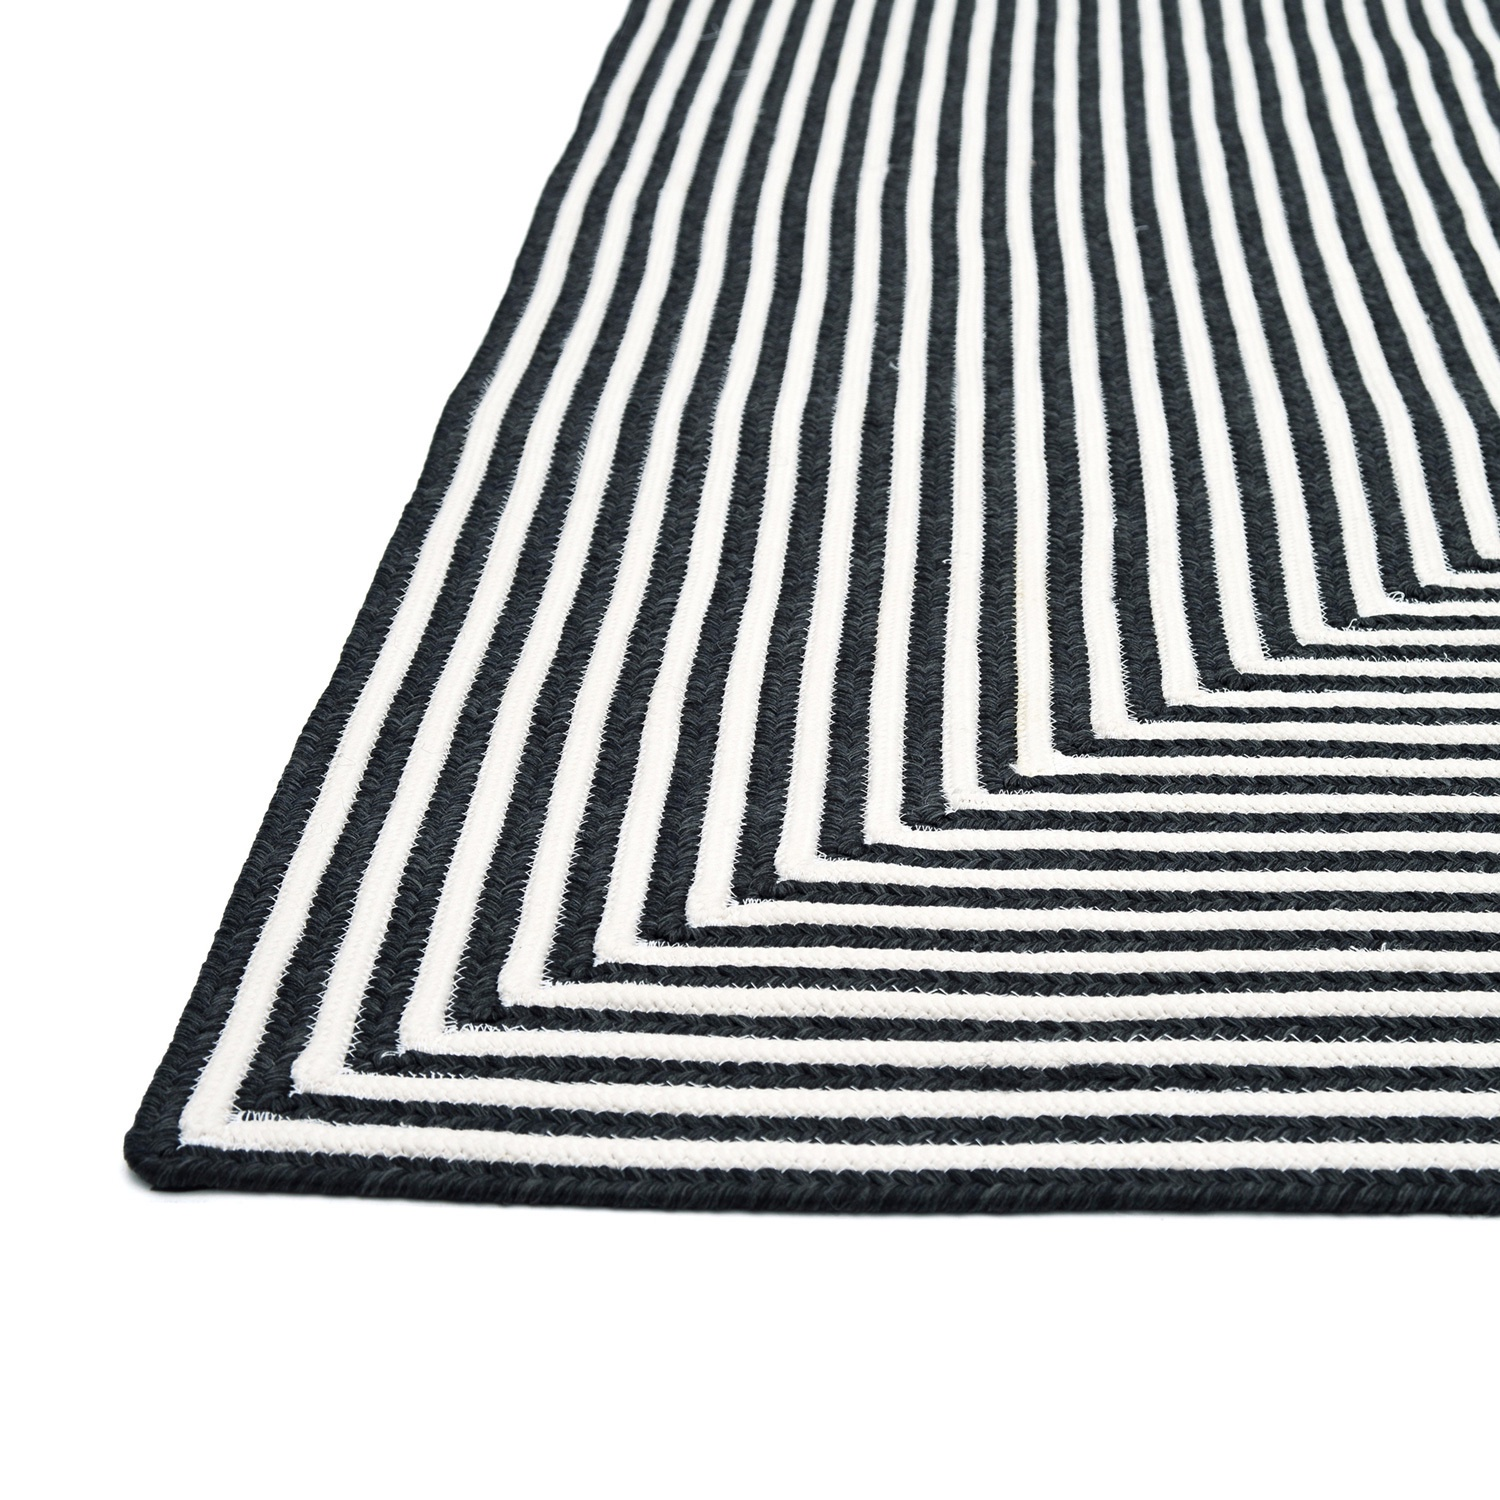 Inout Blackwhite Rug 36x56 Outdoor Rugs Whim House